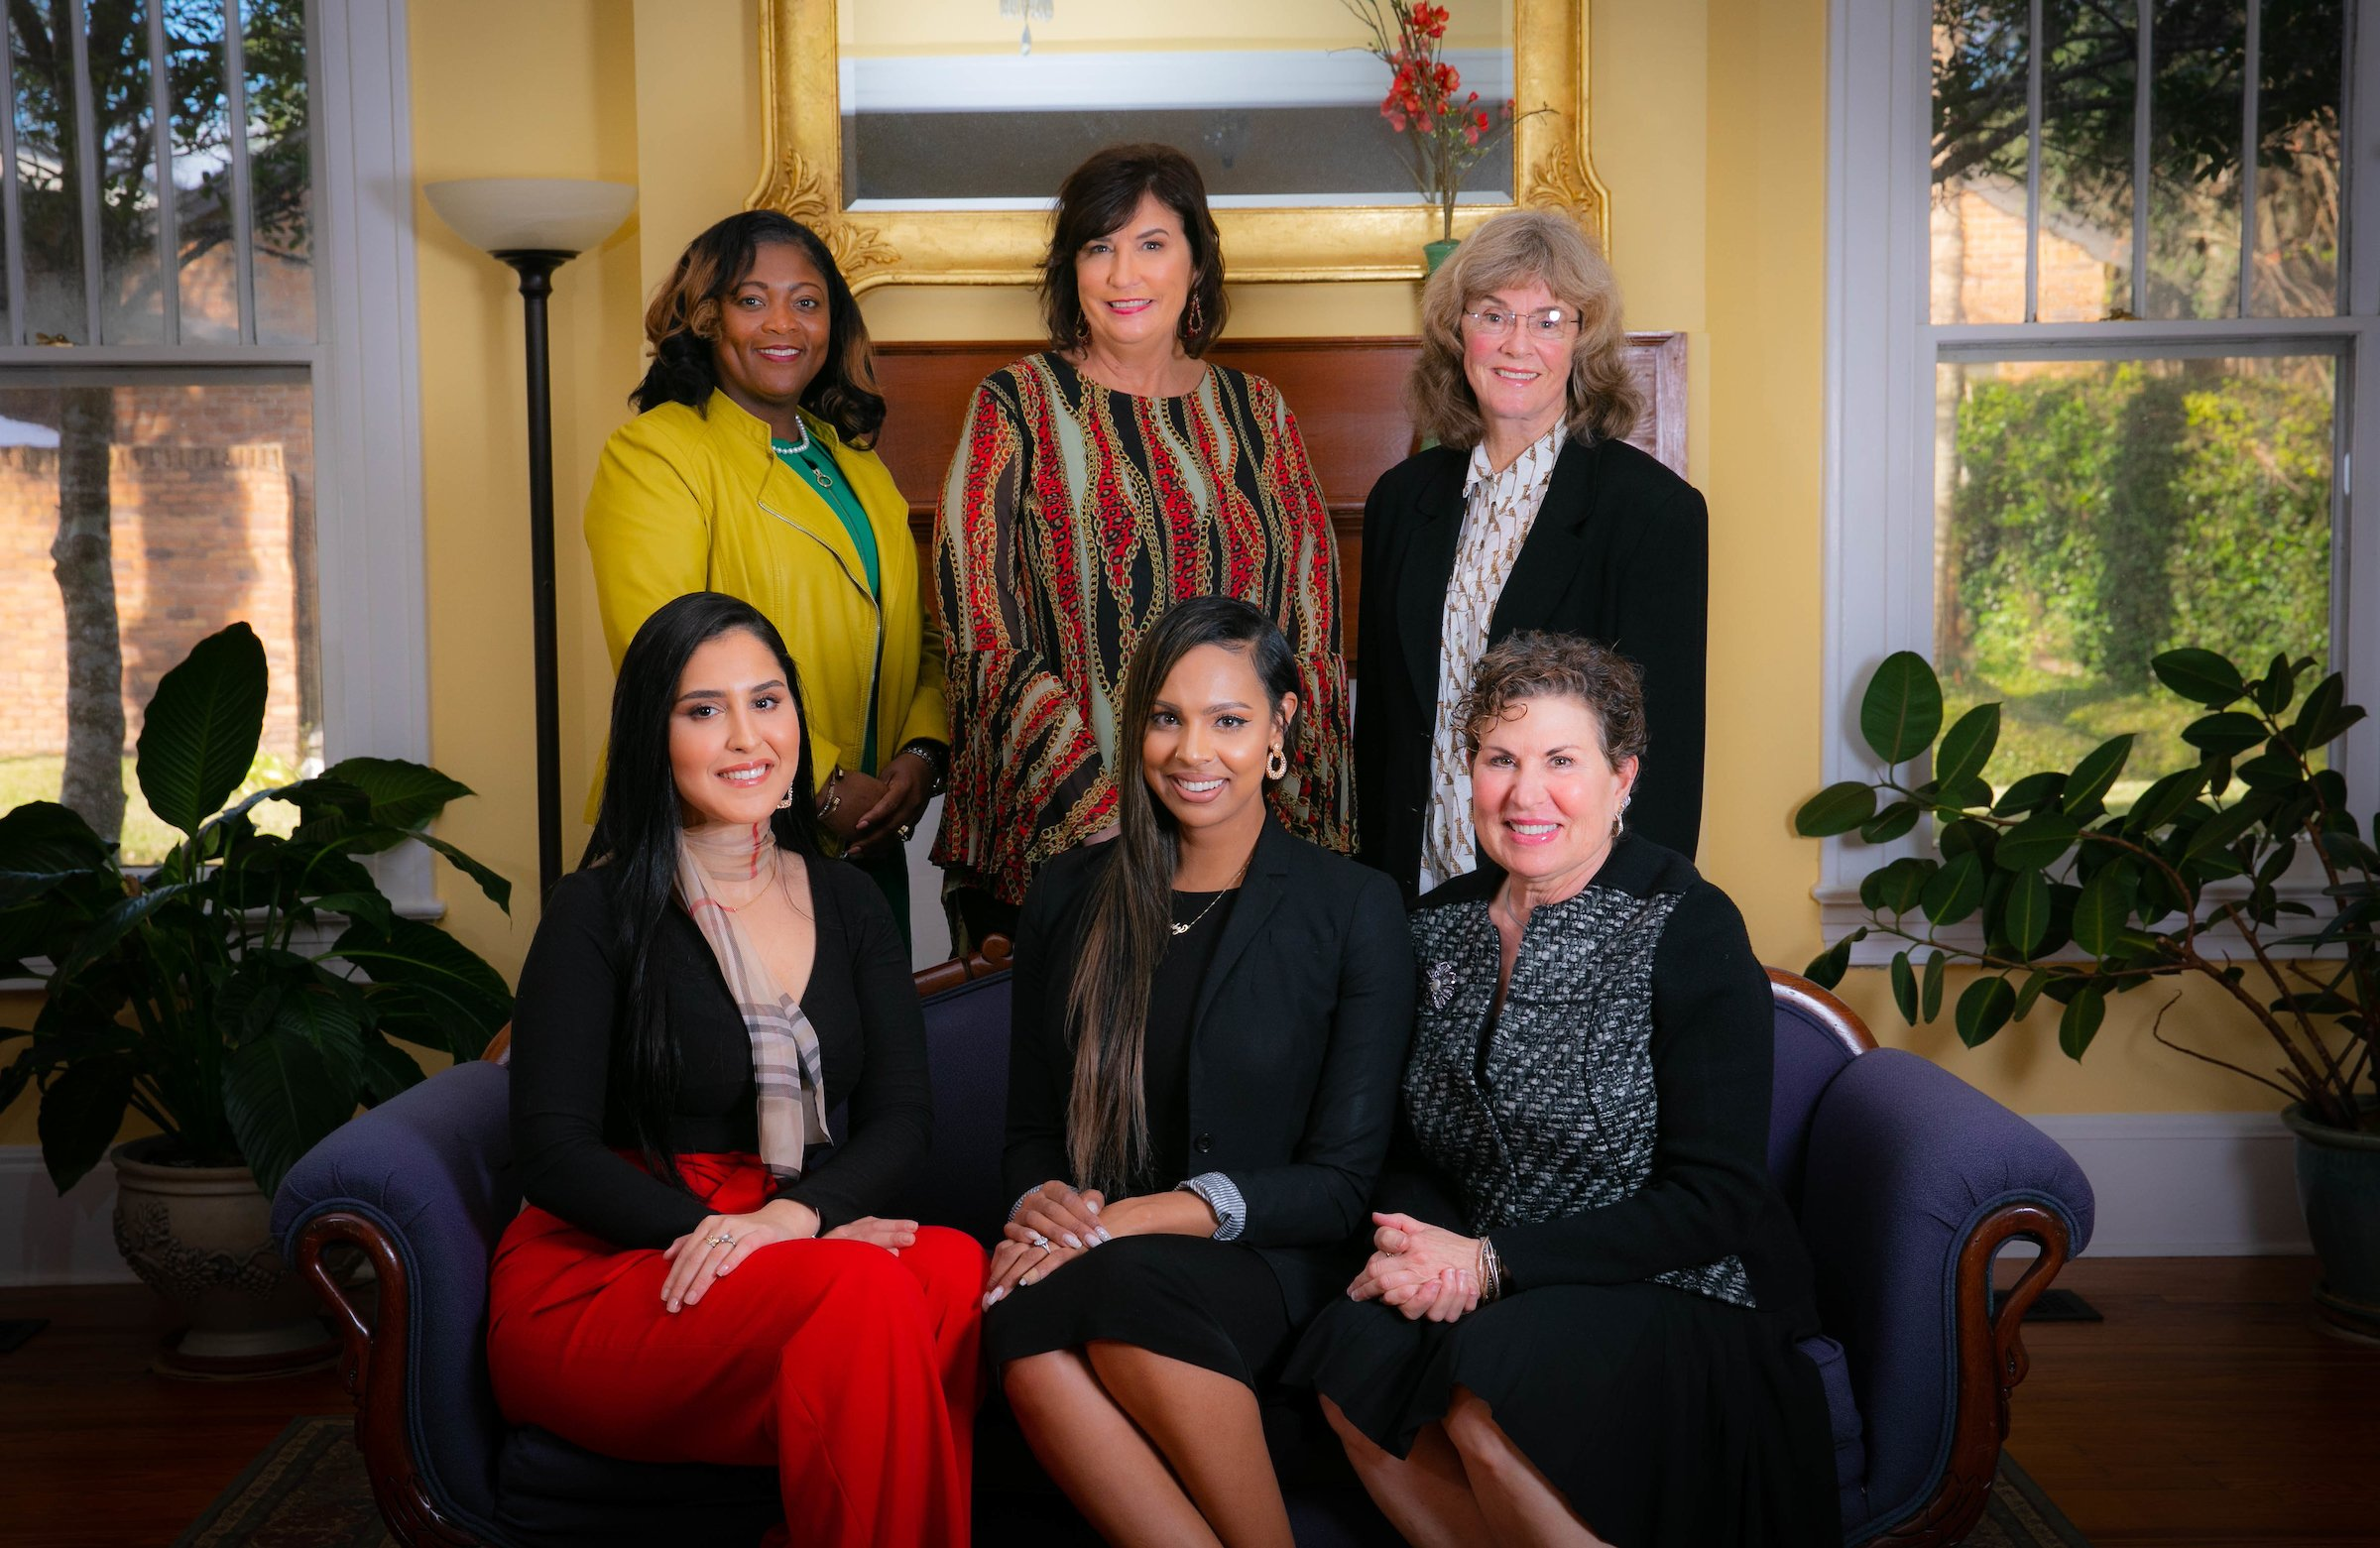 The 2019 Women of Distinction